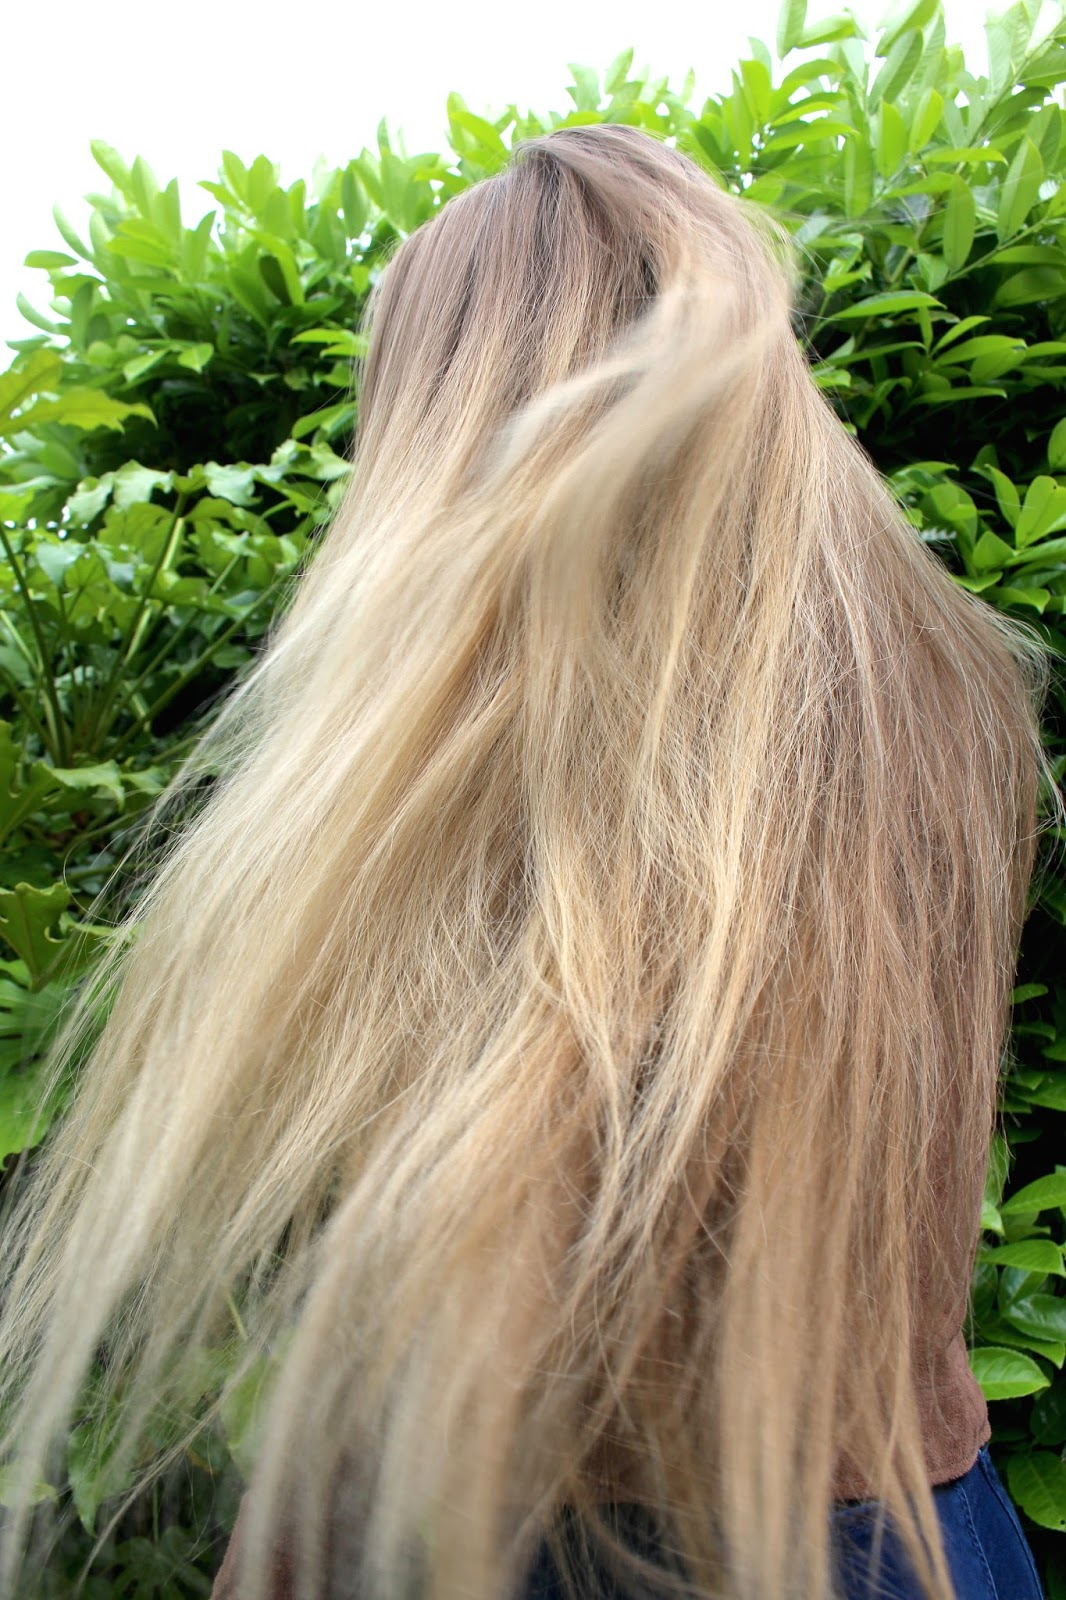 Very long blonde hair